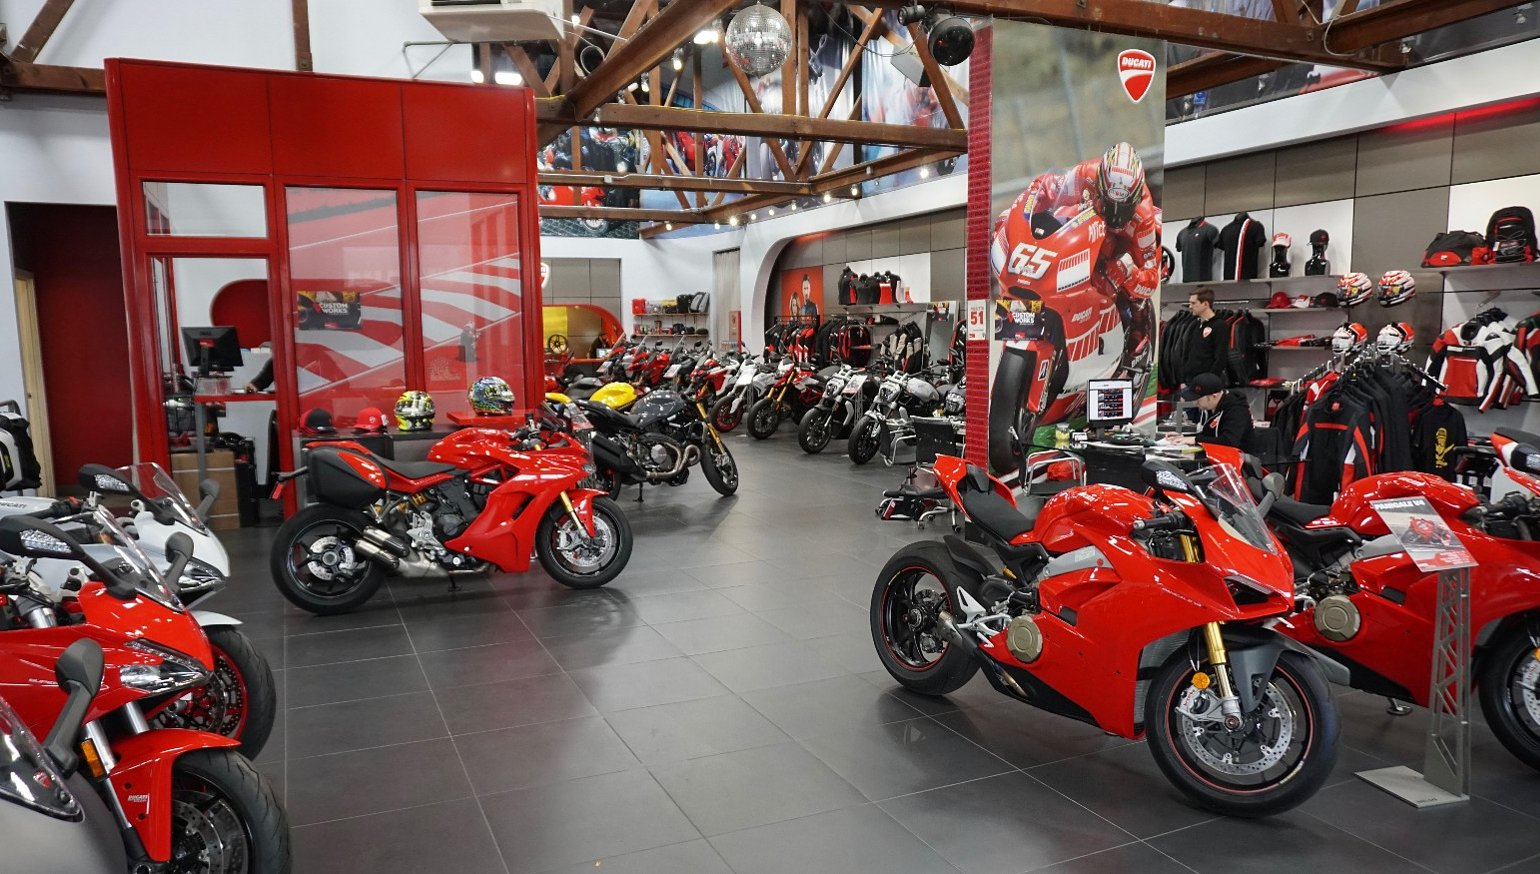 a0466876 MotoCorsa: One motorcycle dealer's different route to success - RevZilla